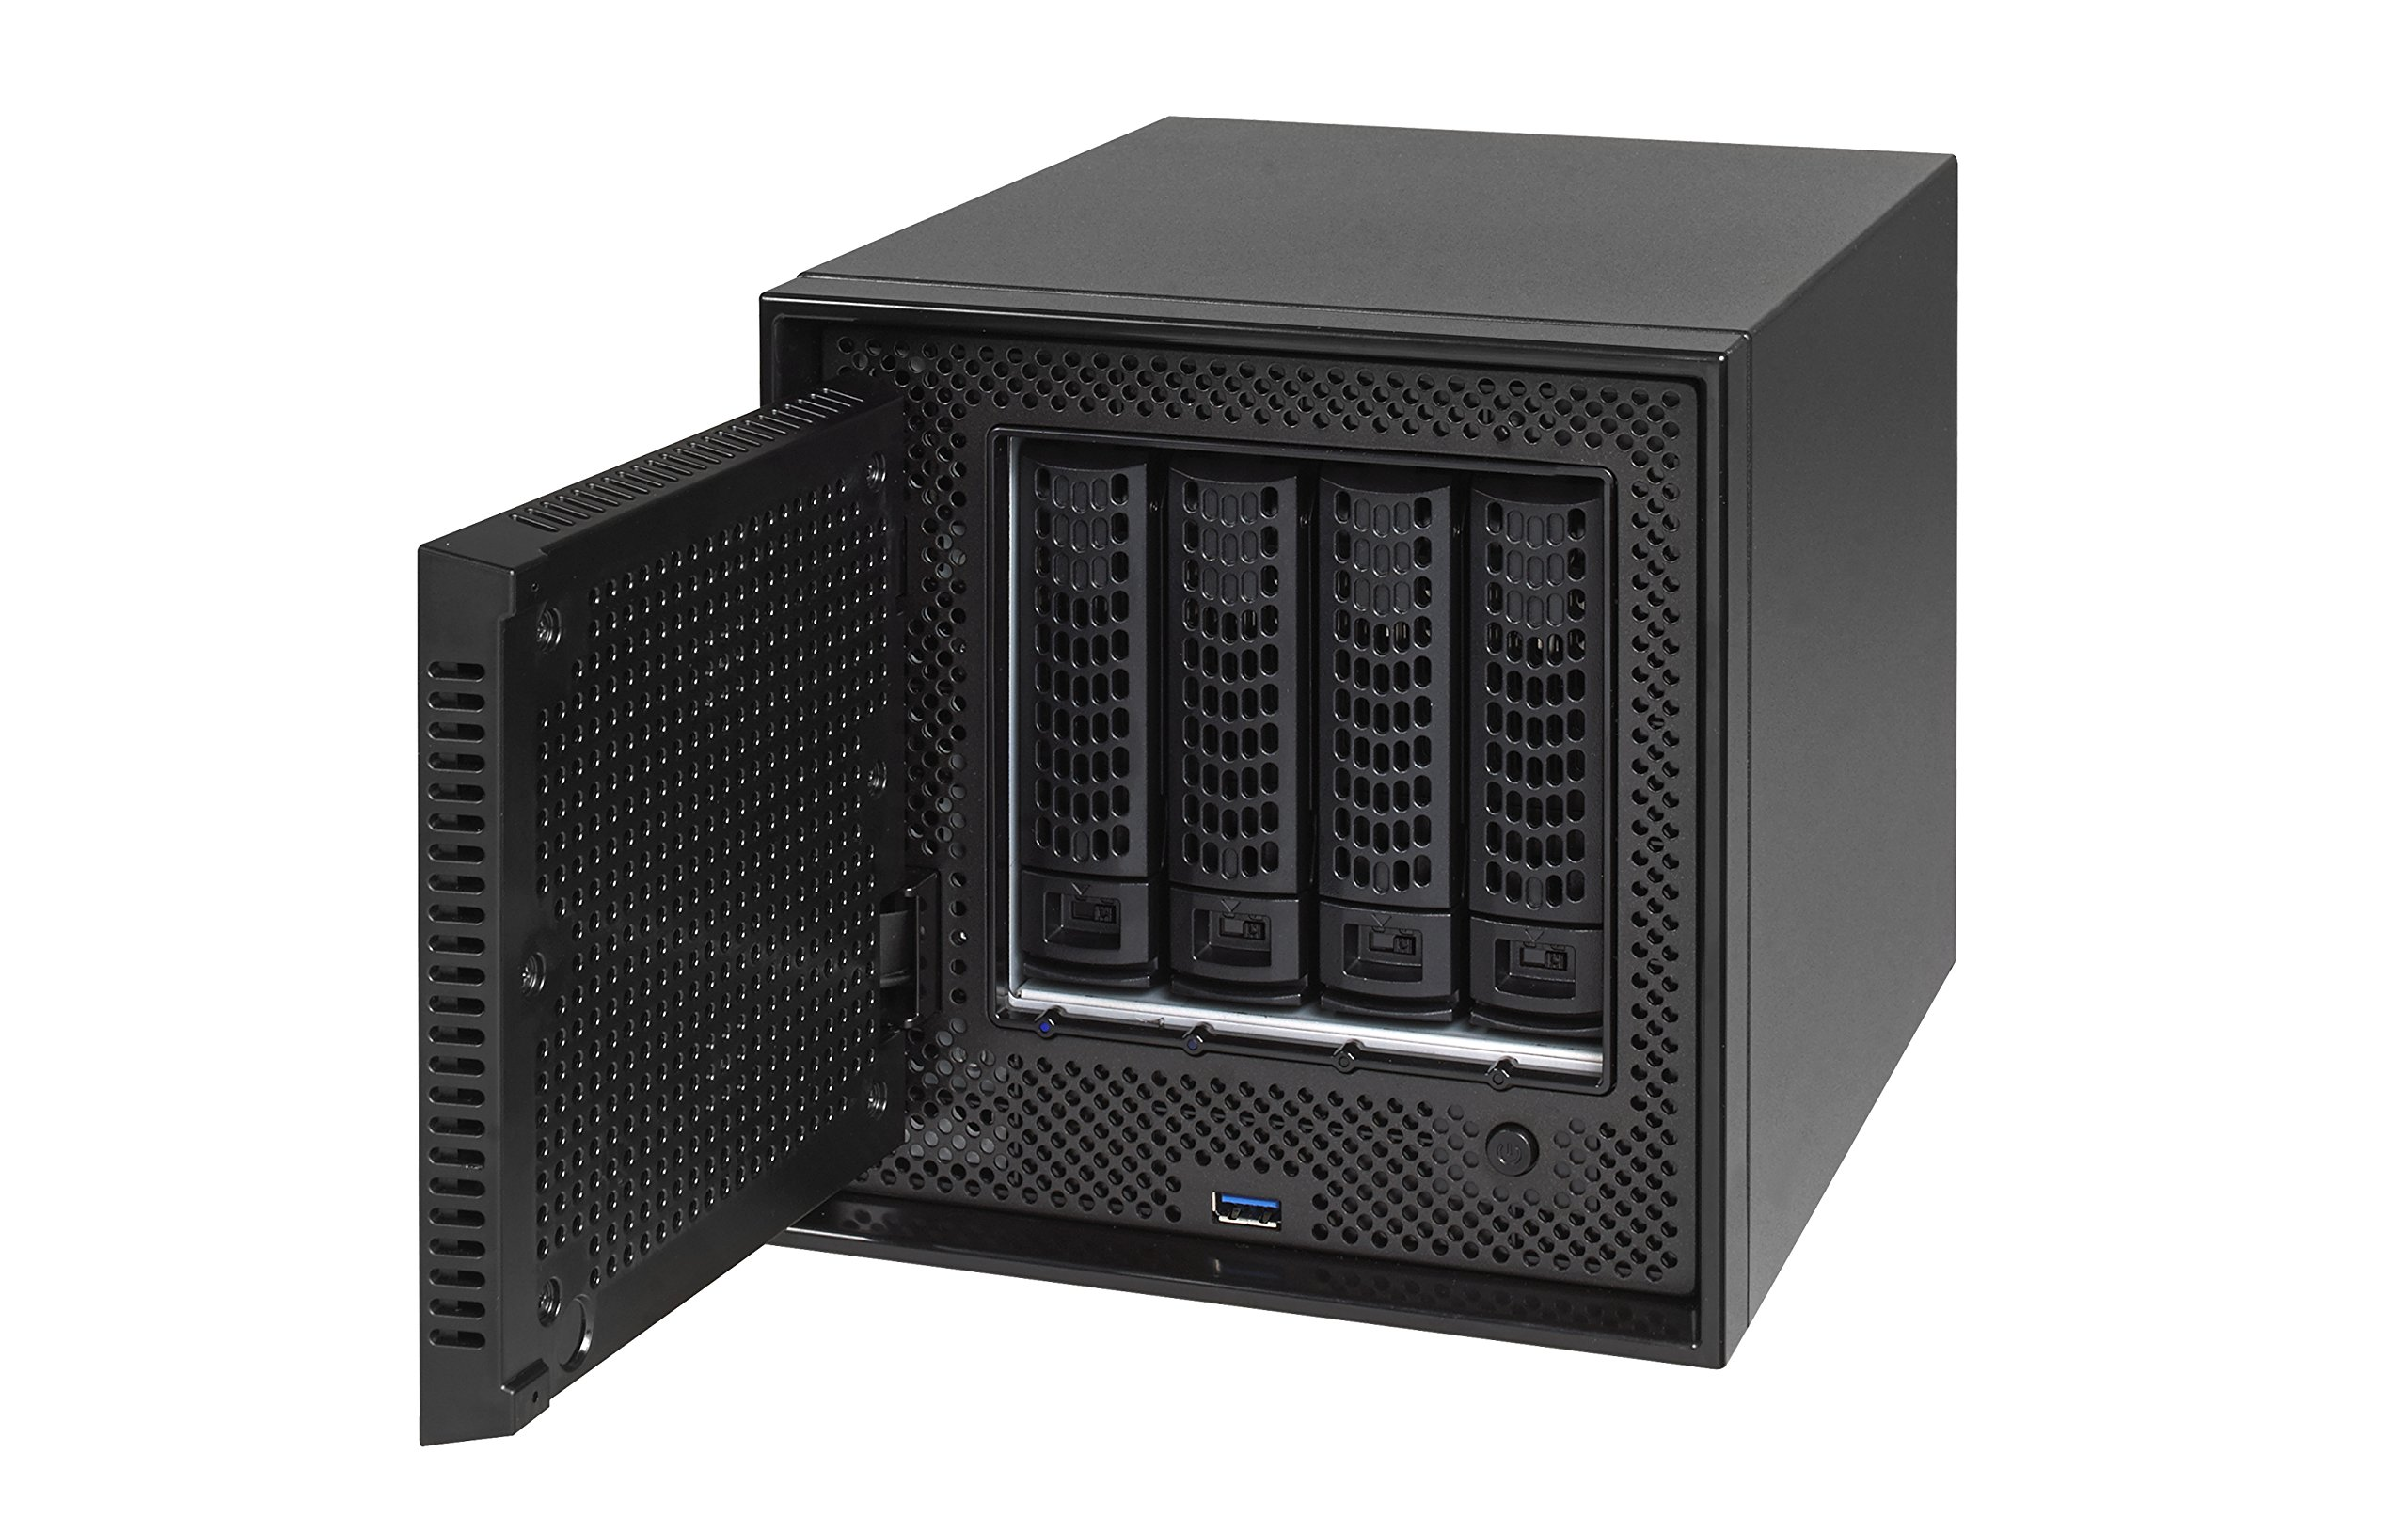 NETGEAR ReadyNAS RN524X00 4 Bay Diskless Premium Performance NAS, 40TB Capacity Network Attached Storage, Intel 2.2GHz Dual Core Processor, 4GB RAM 5 PREMIUM PERFORMANCE - Up to 20 gigabit per second data access, powered by a server processor 10G CONNECTIVITY - Utilize your 10G infrastructure for fast data sharing and backup throughput HIGH-PERFORMANCE - Get 2x faster business application processing with the latest 64-bit technology